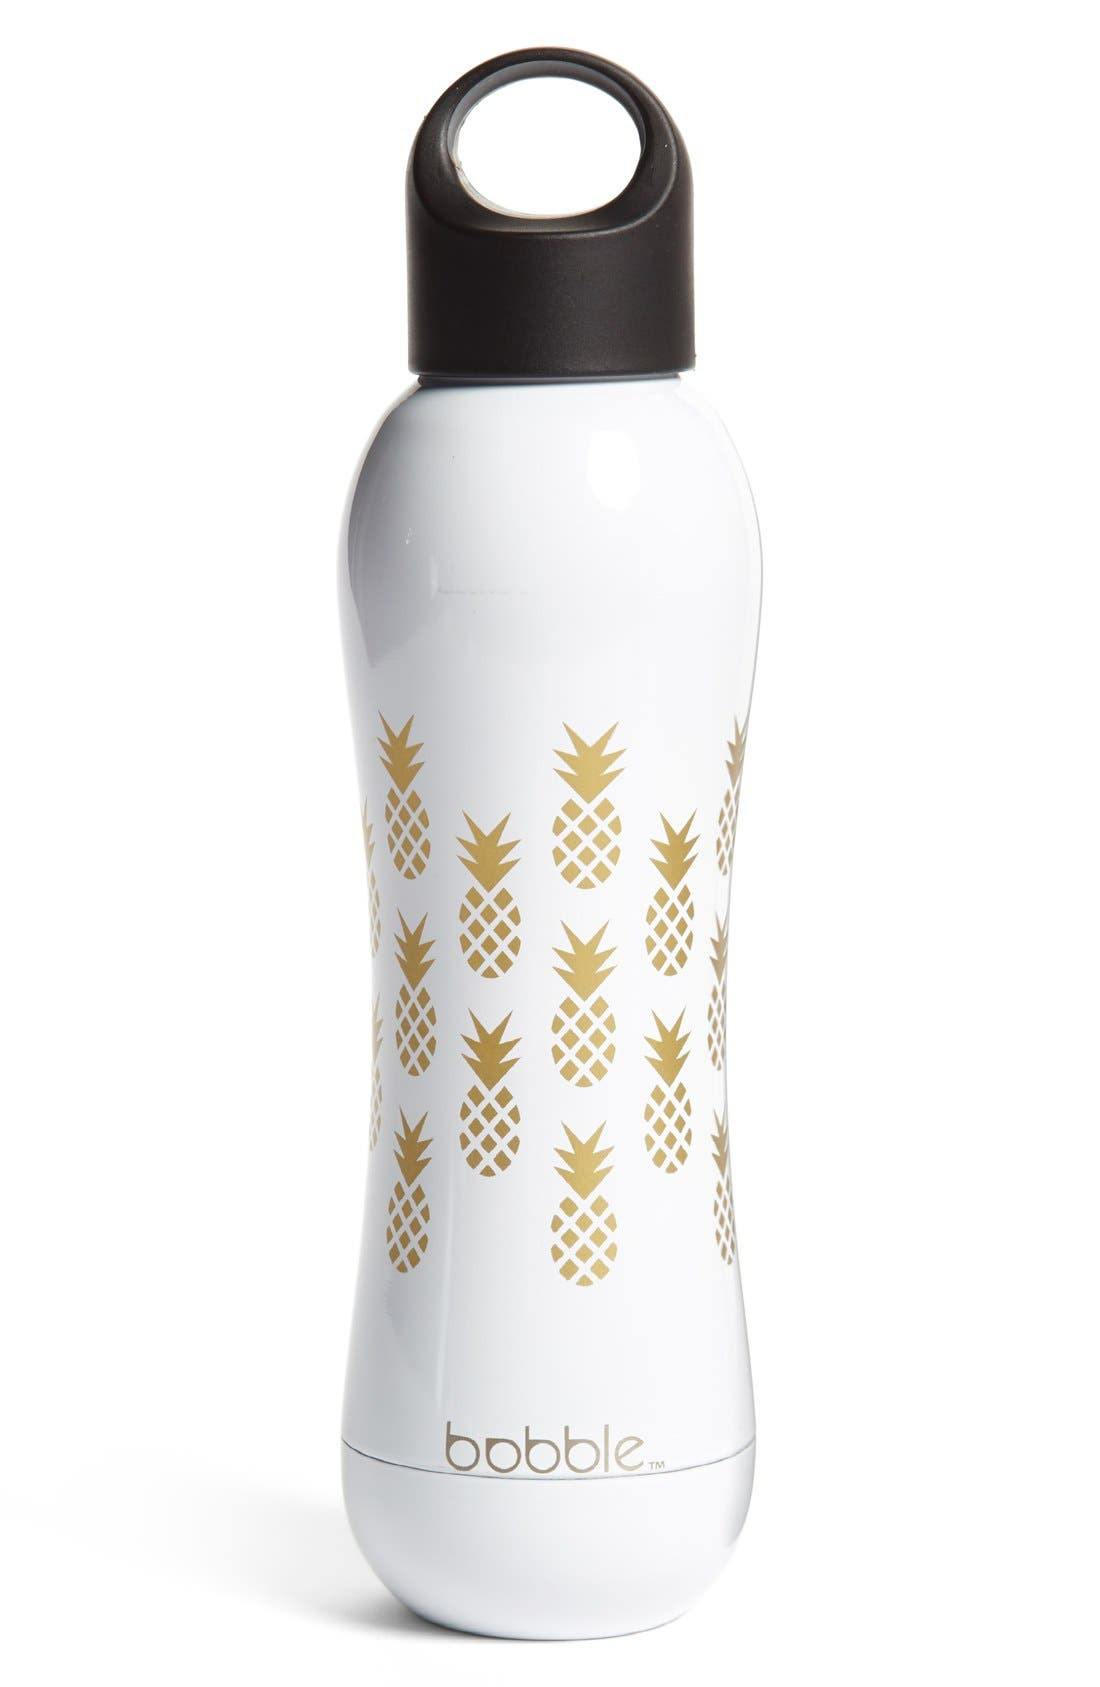 'Pining for You' Stainless Steel Water Bottle,                         Main,                         color, White